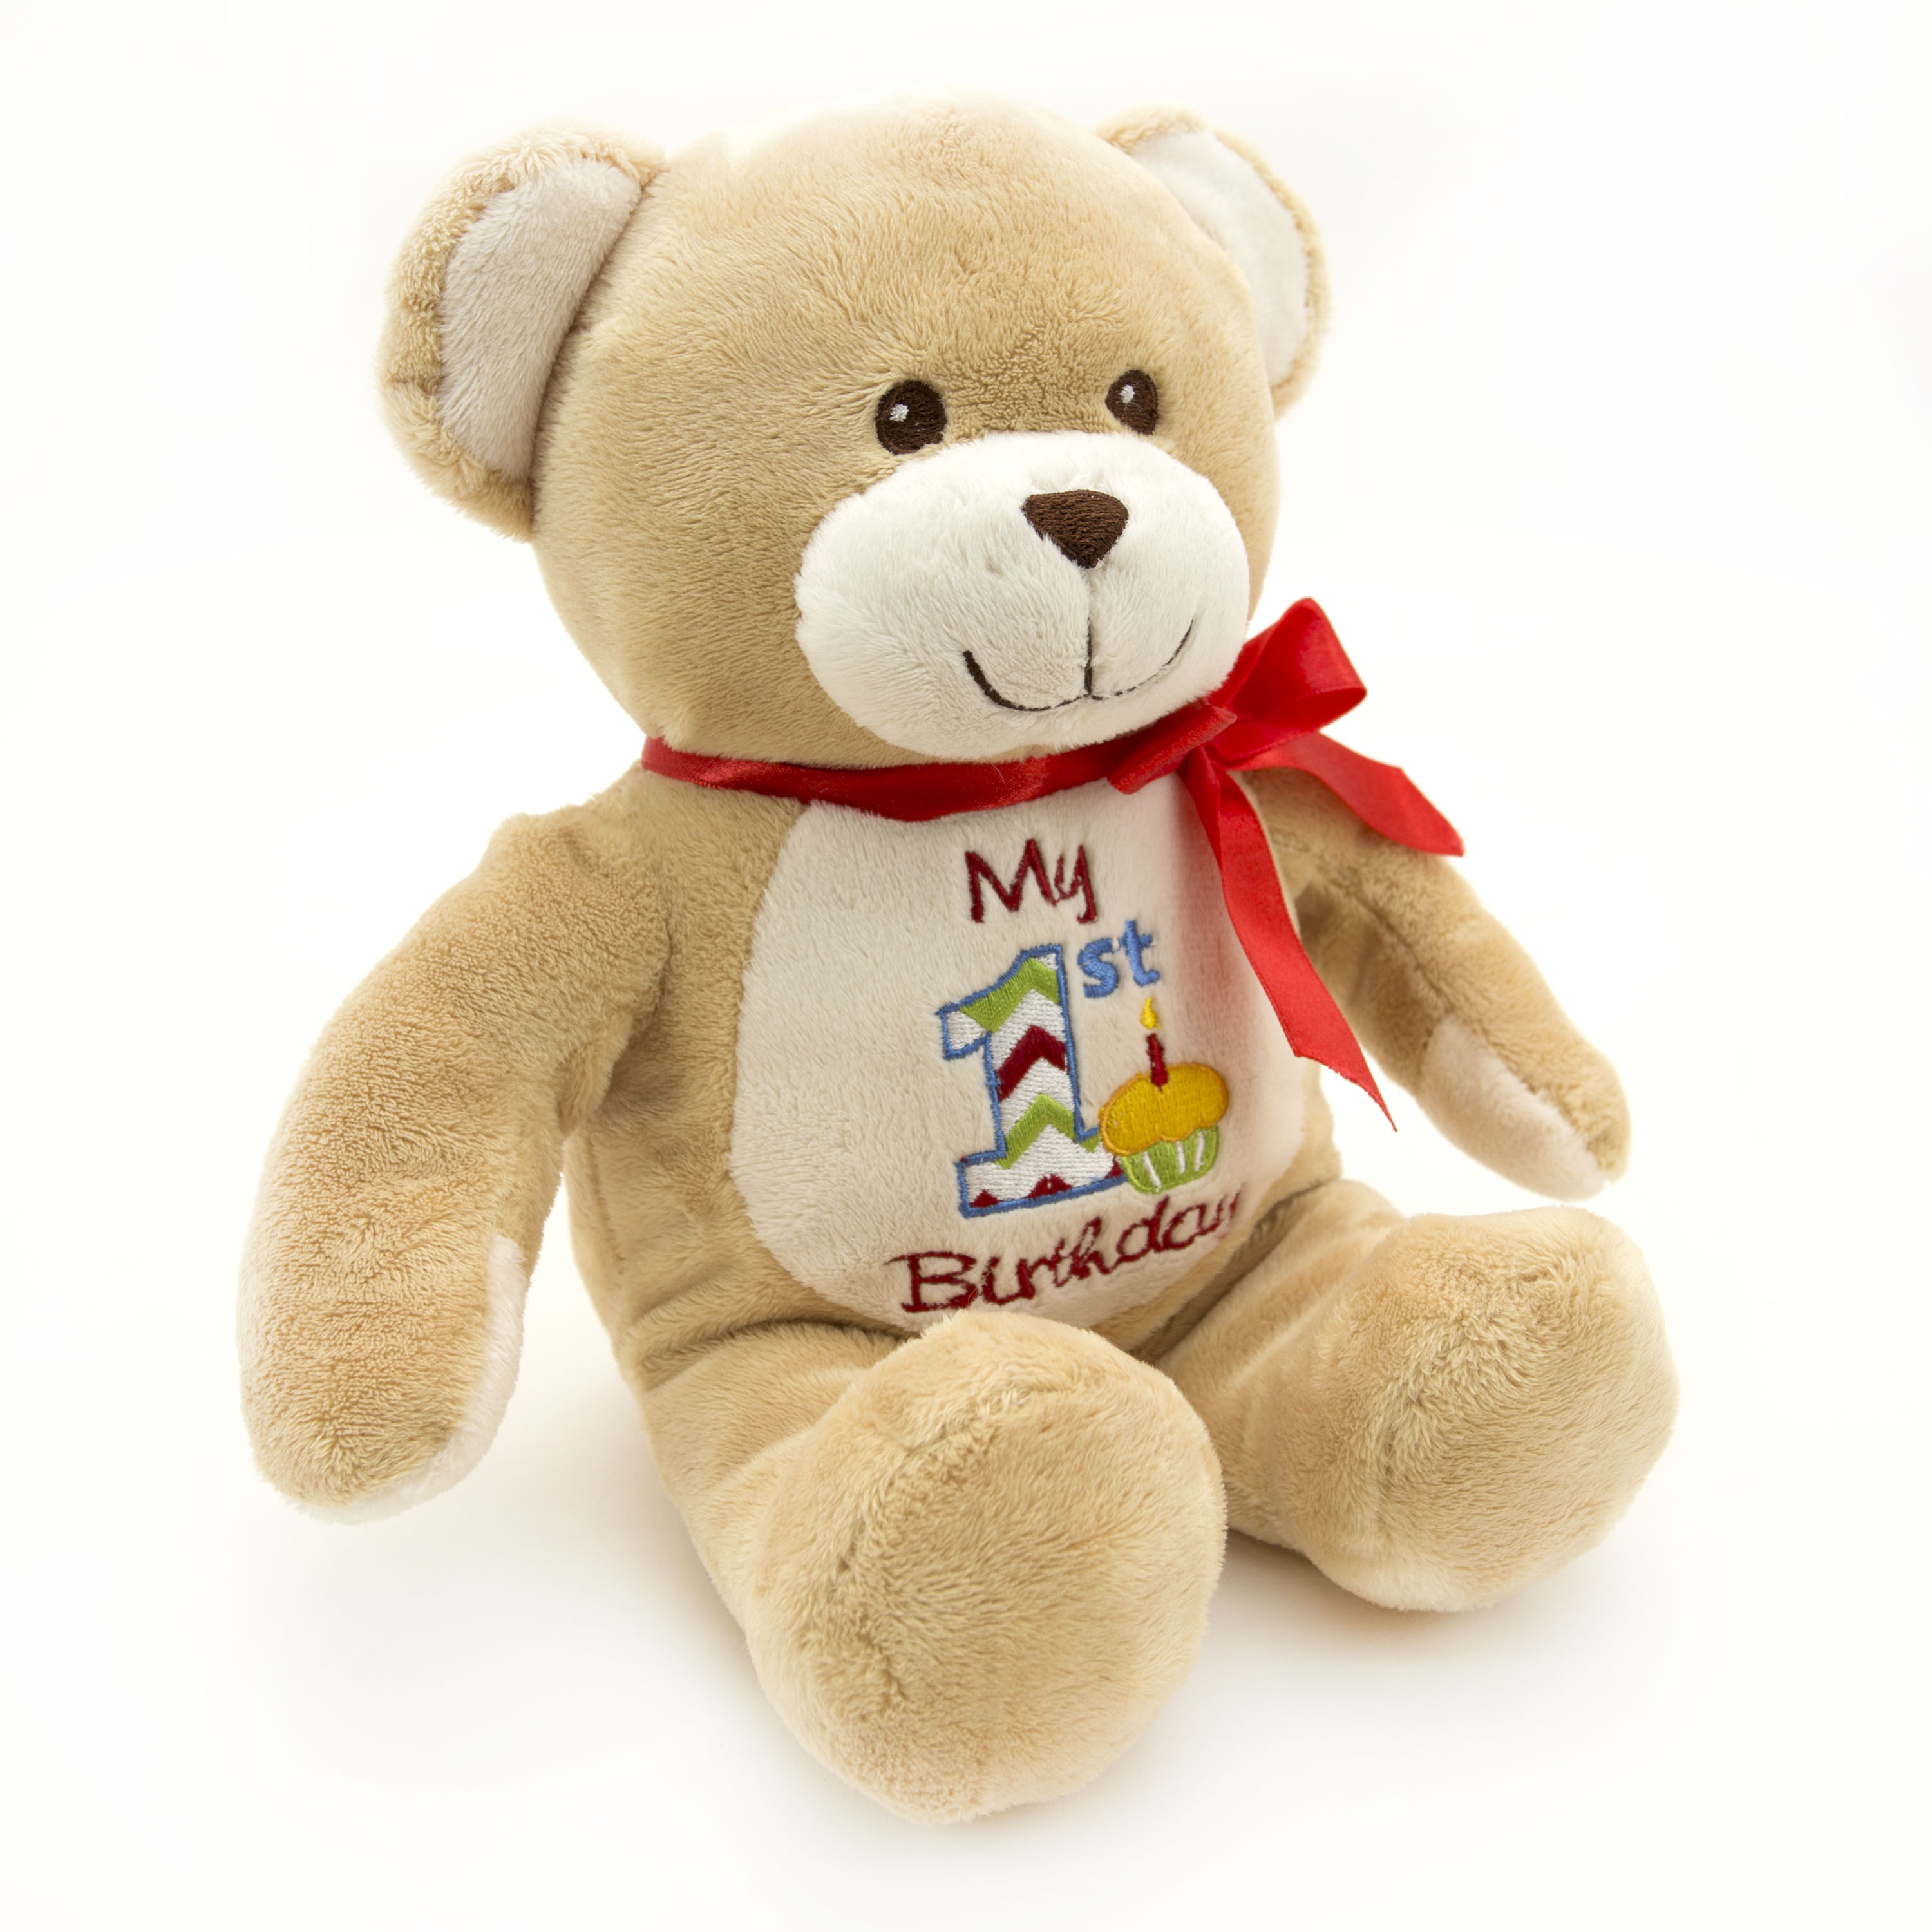 Way To Celebrate 12 - inch My First Birthday Plush Toy  -  Brown Bear